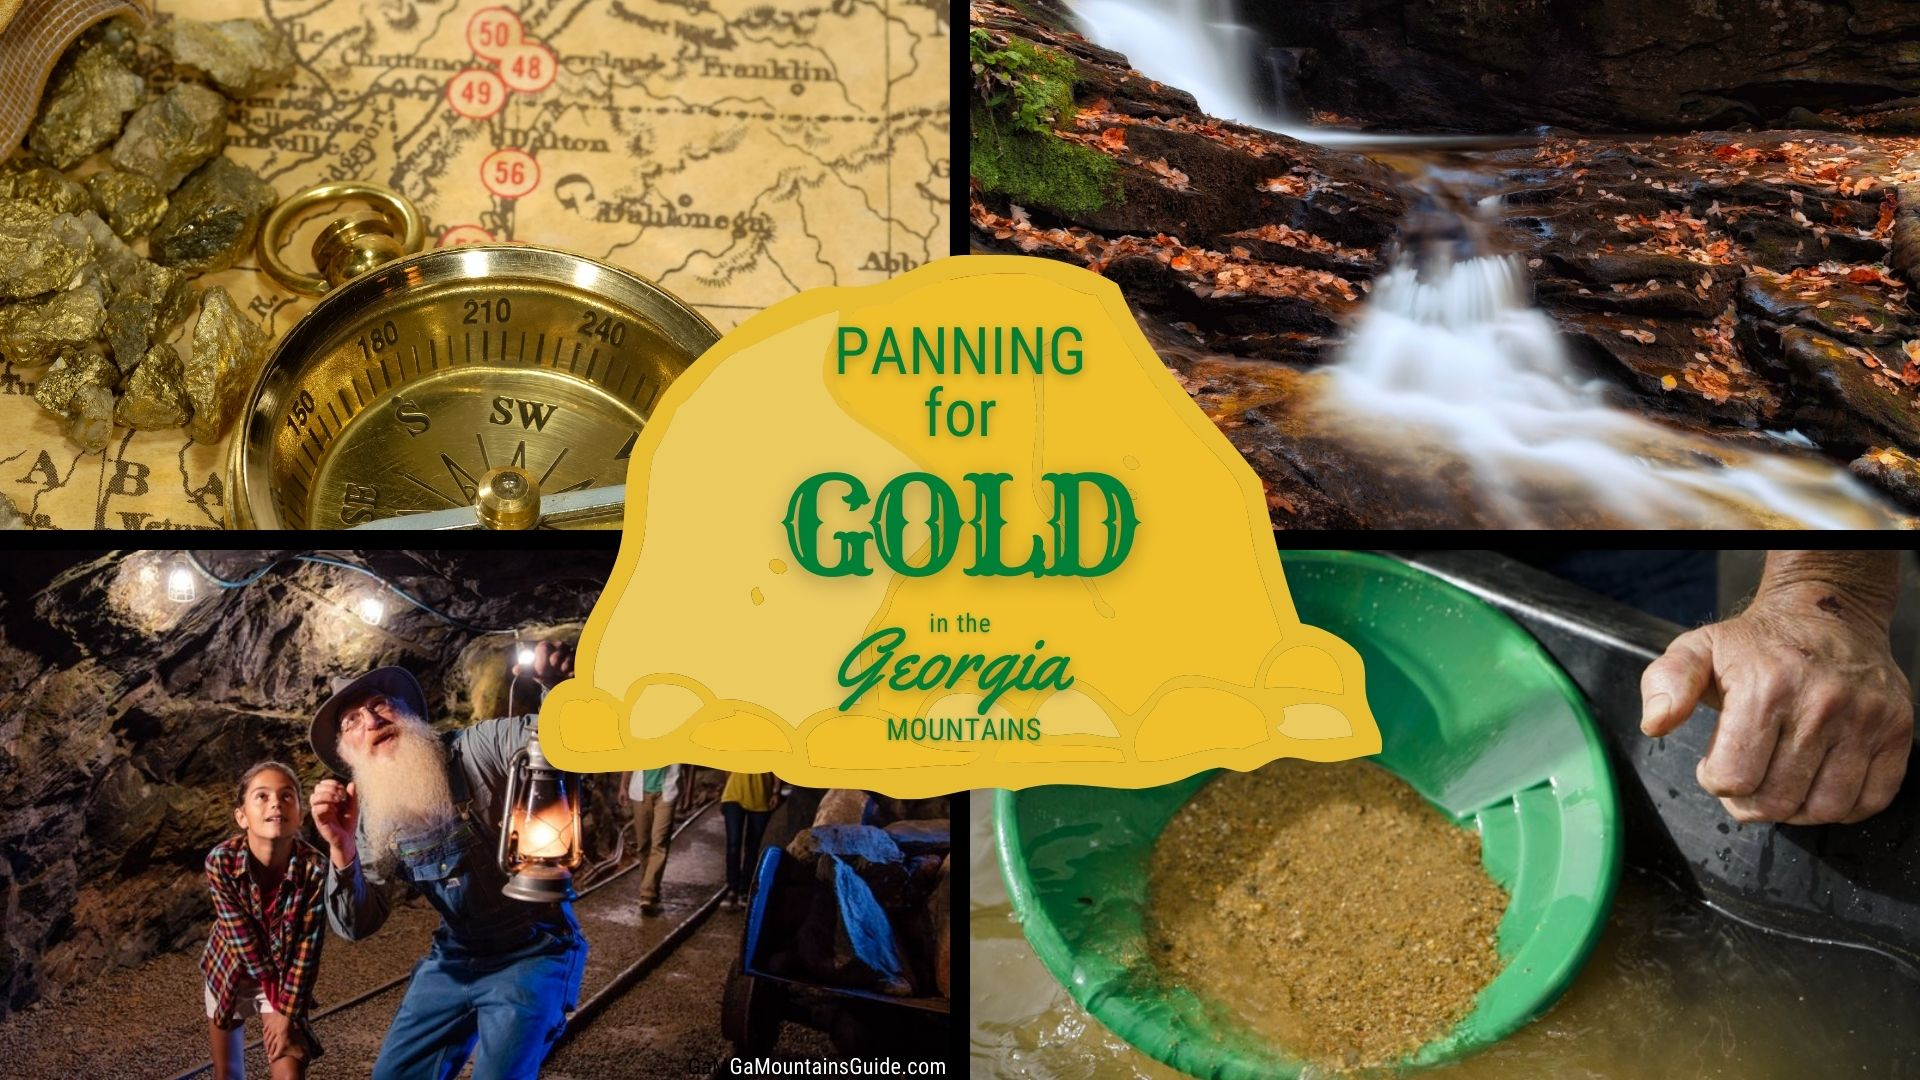 Best-Gold-Panning-Georgia-Mountains